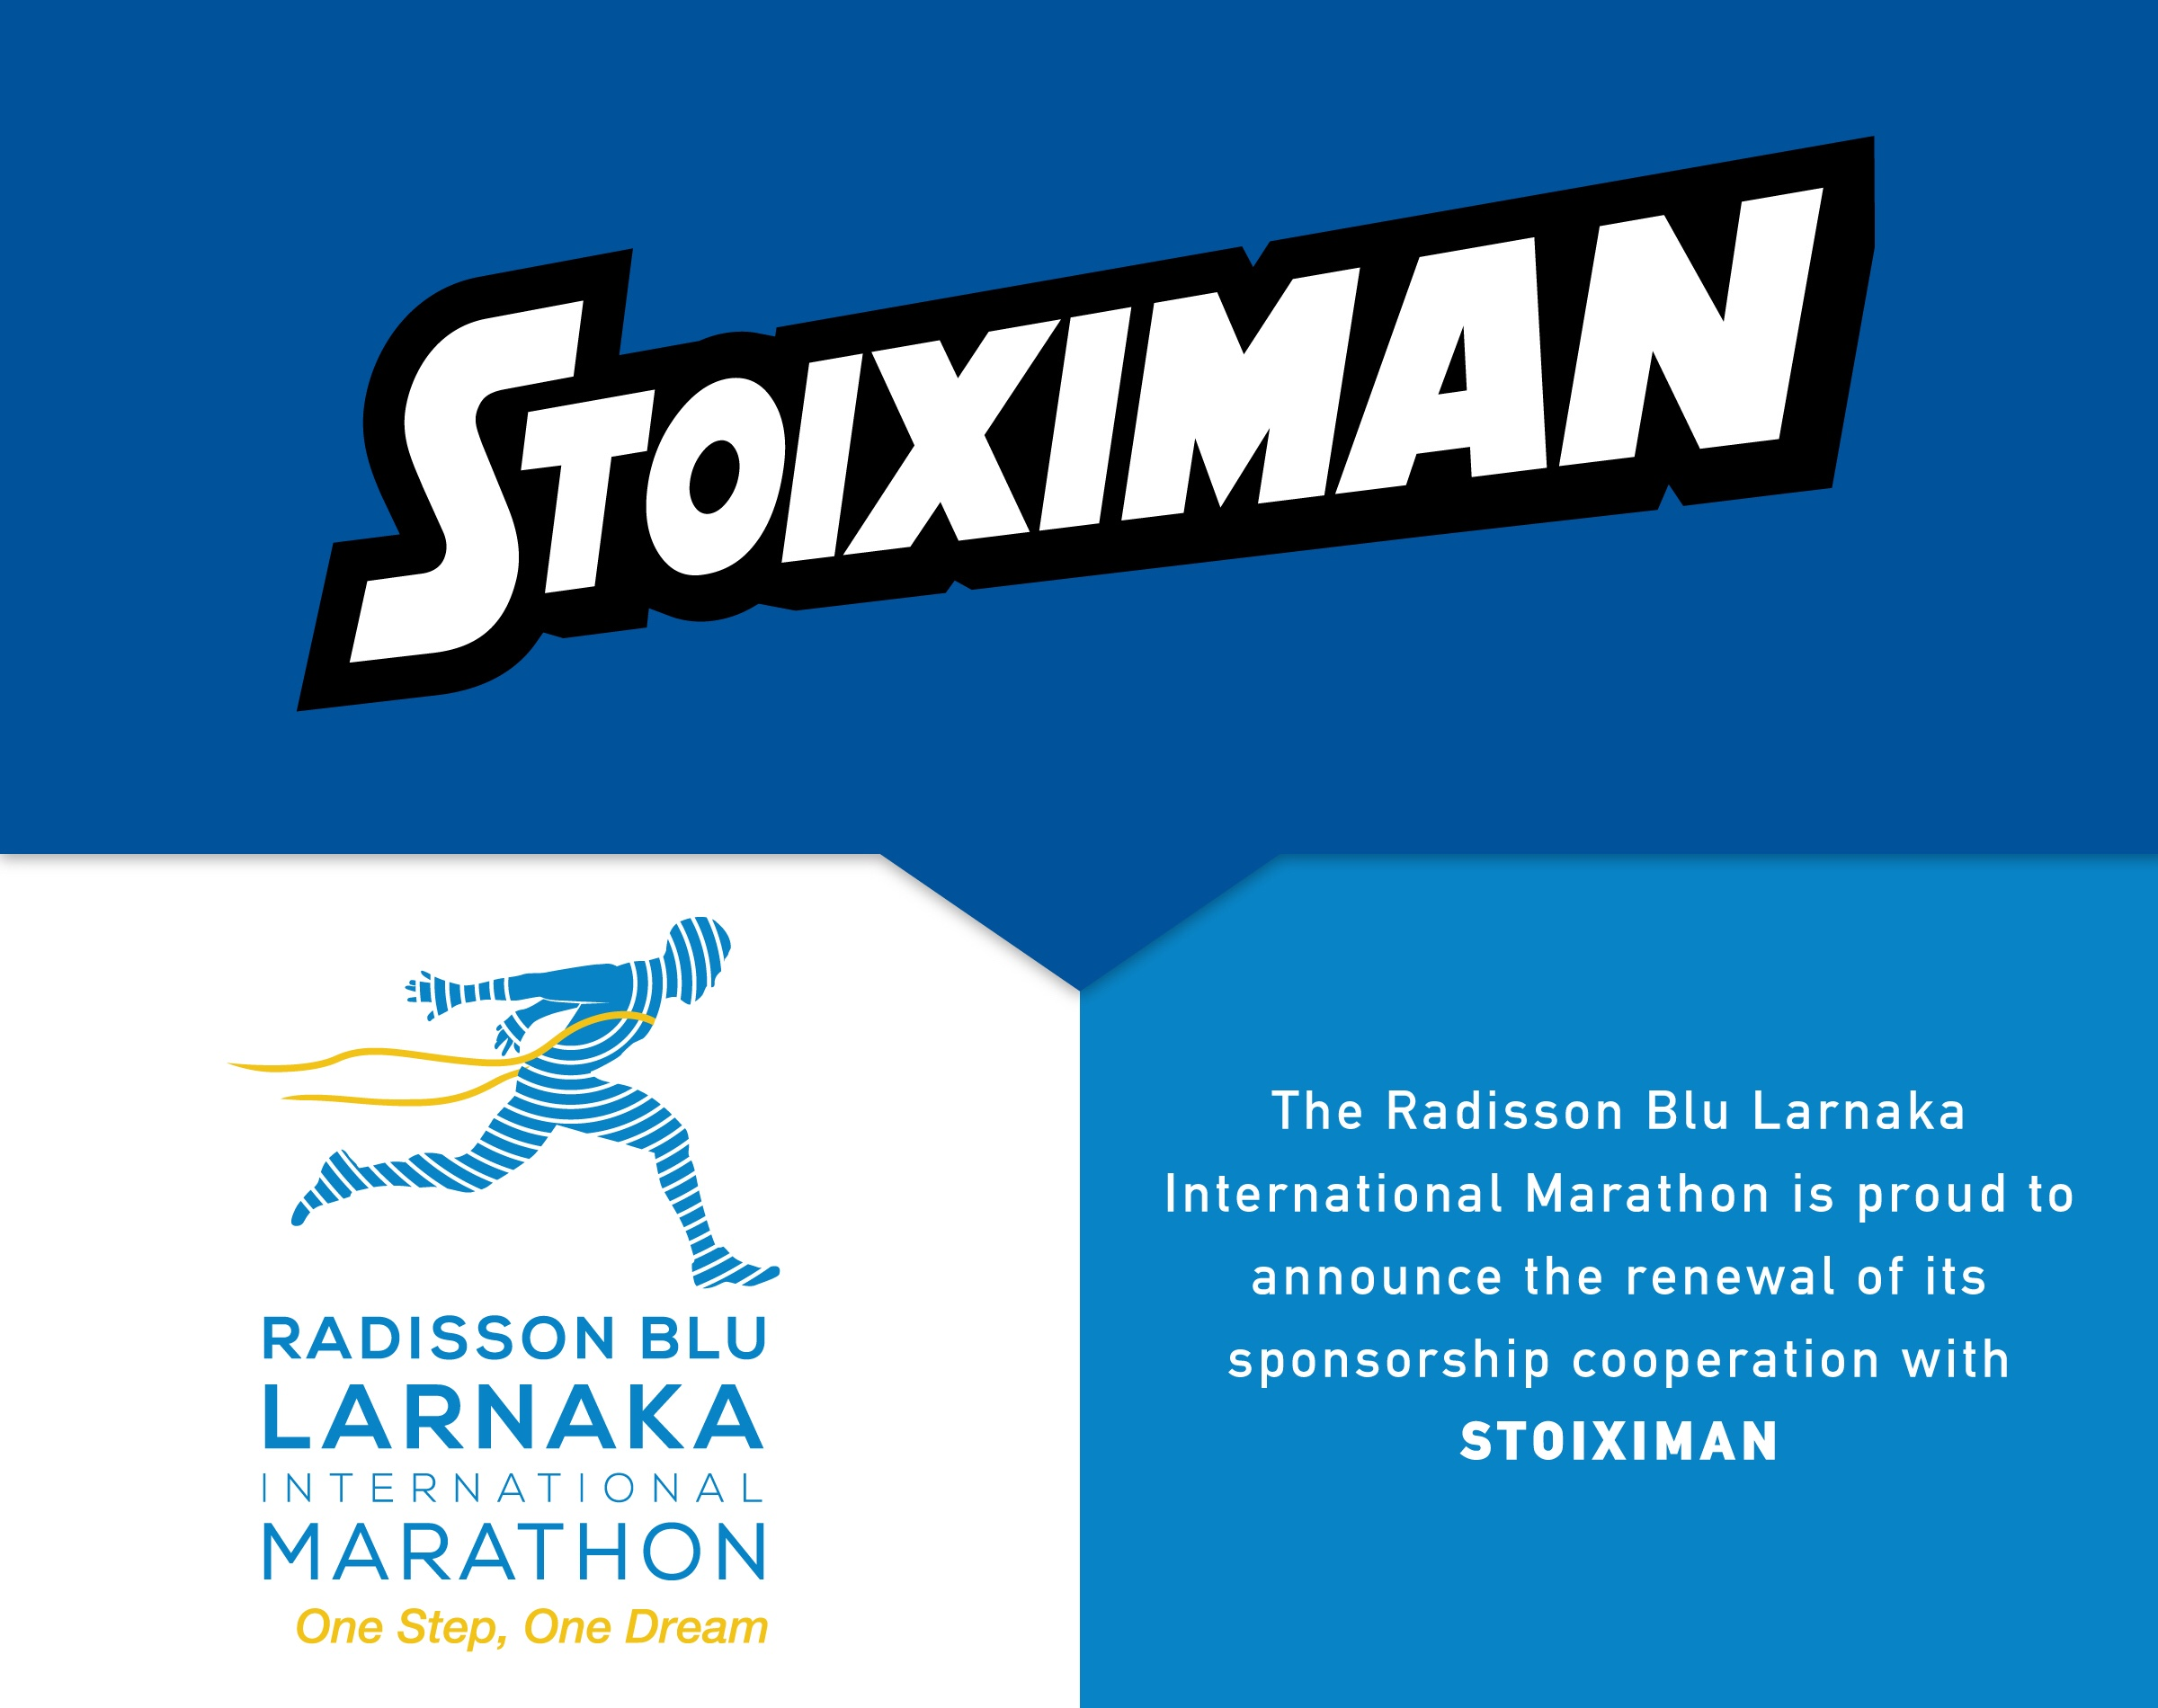 sponsors-announcement-03-stoiximan-01-no.jpg